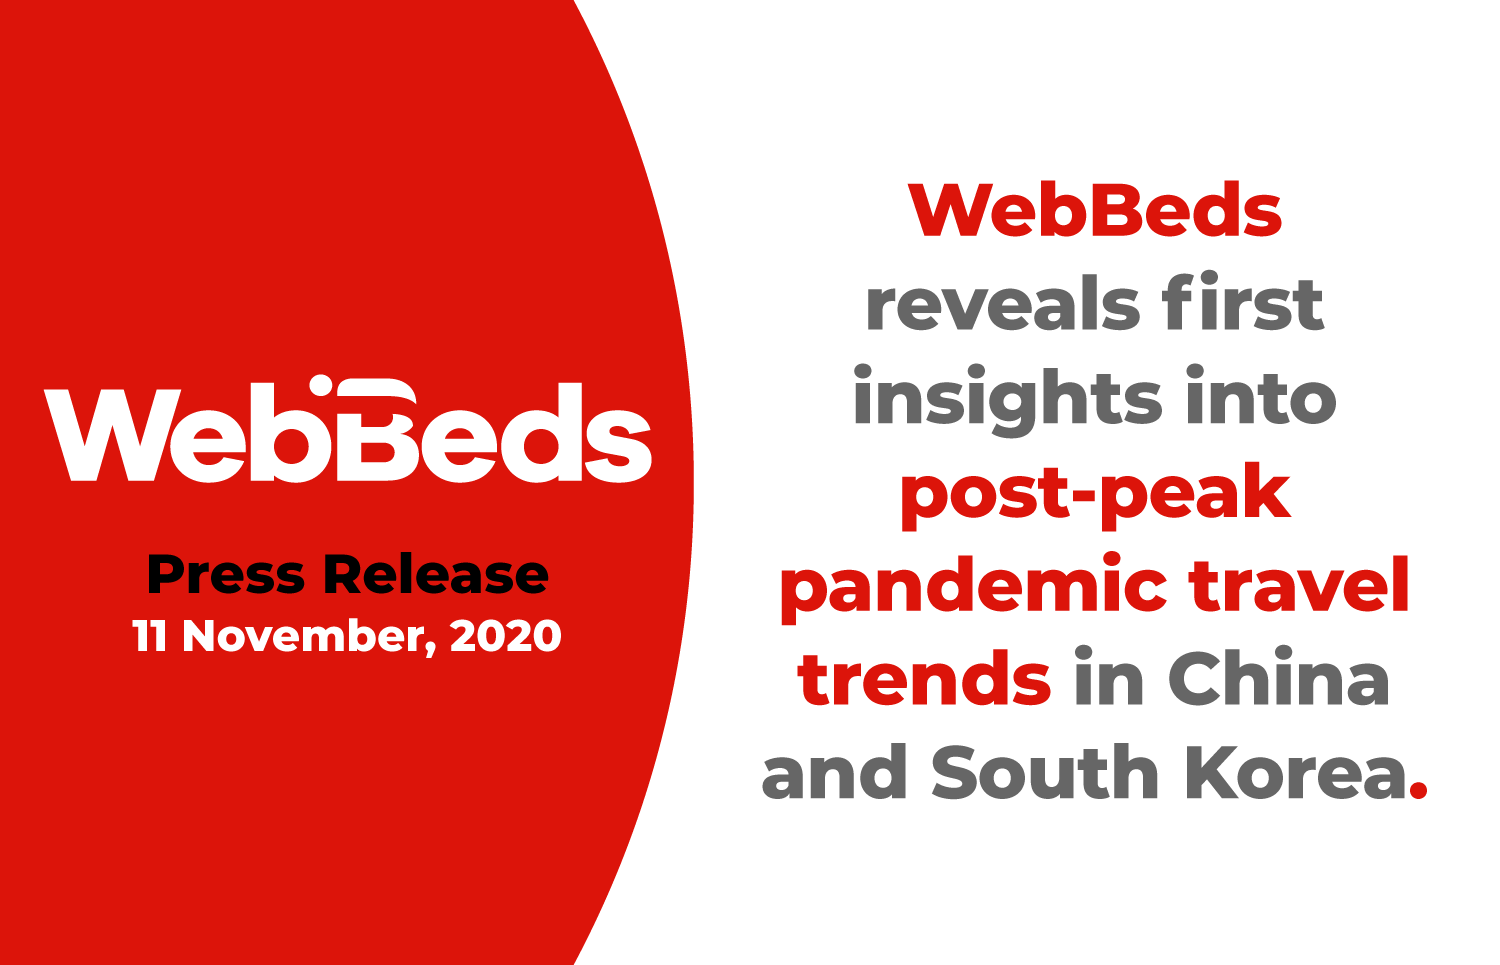 WebBeds Reveals First Insights Into Post-Peak Pandemic Travel Trends in China and South Korea